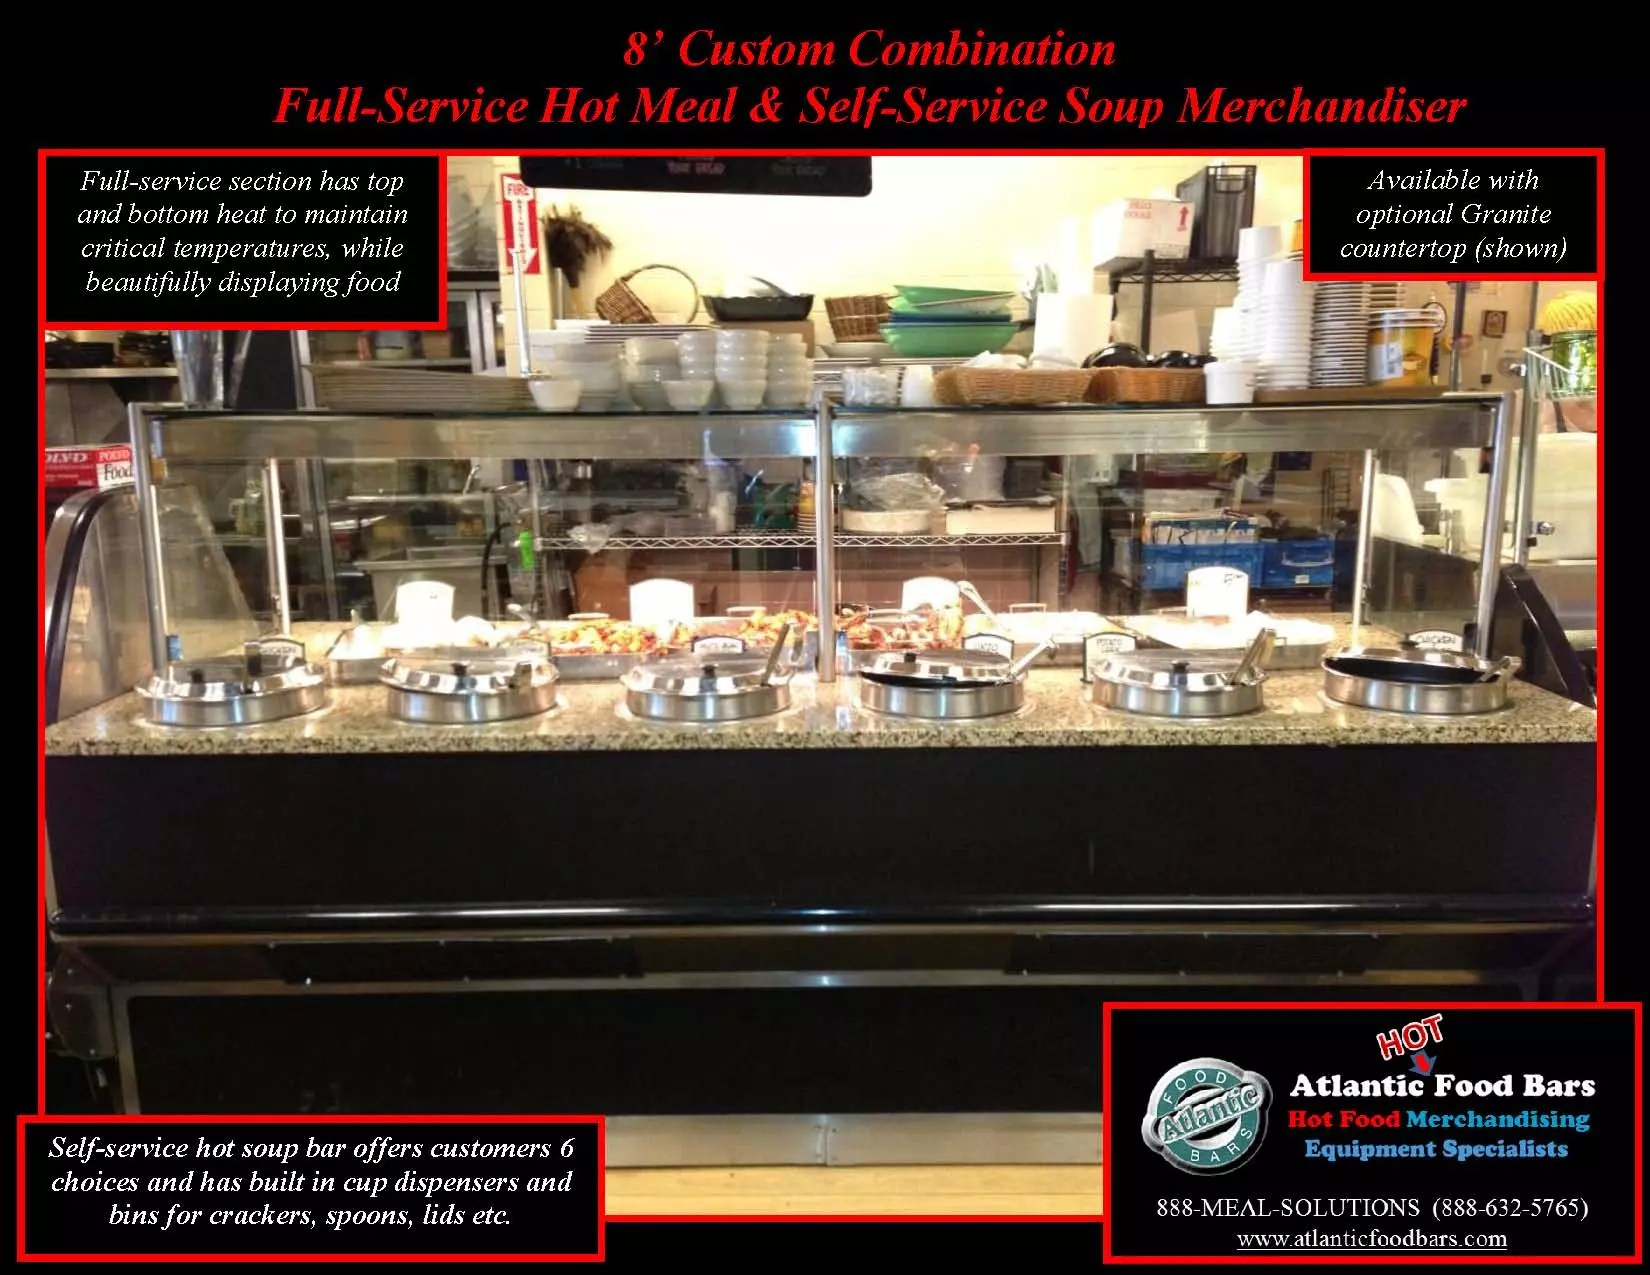 Atlantic food bars custom soup hot meal merchandiser for Food bar 8 0